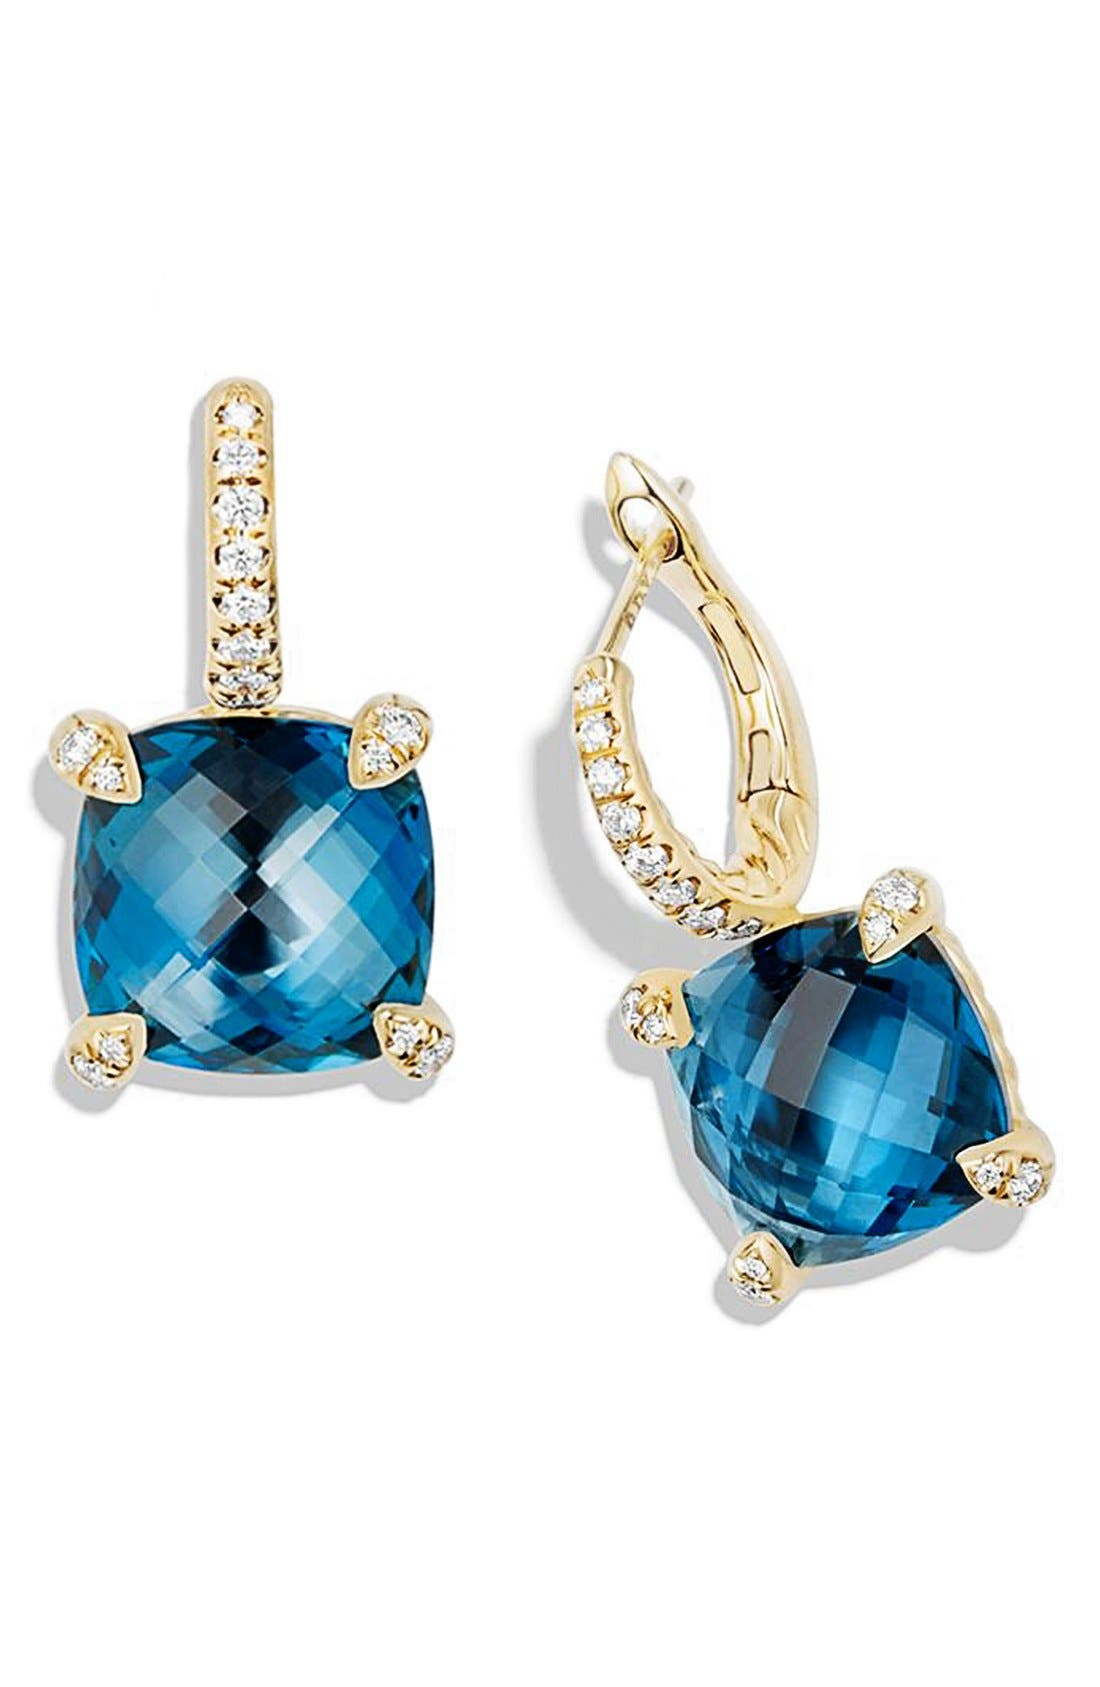 'Chatelaine' Hampton Blue Topaz and Diamonds in 18K Gold,                             Alternate thumbnail 2, color,                             Hampton Blue Topaz